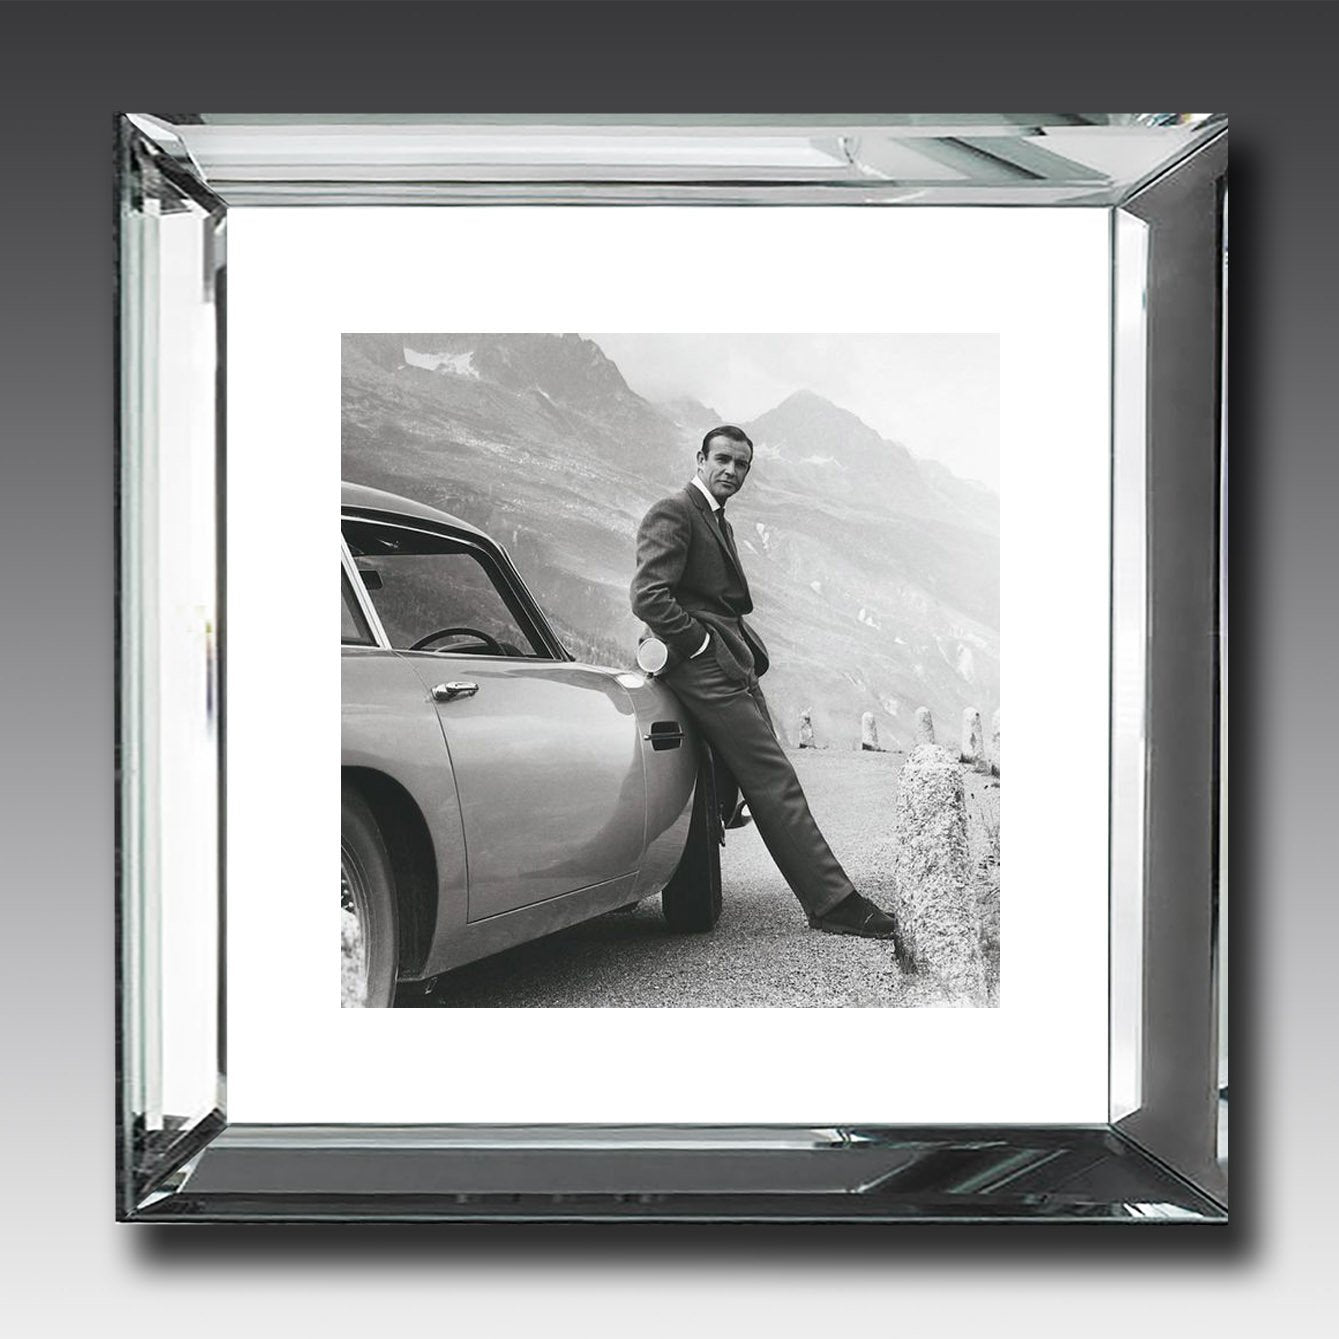 James Bond Aston Martin mirror framed picture